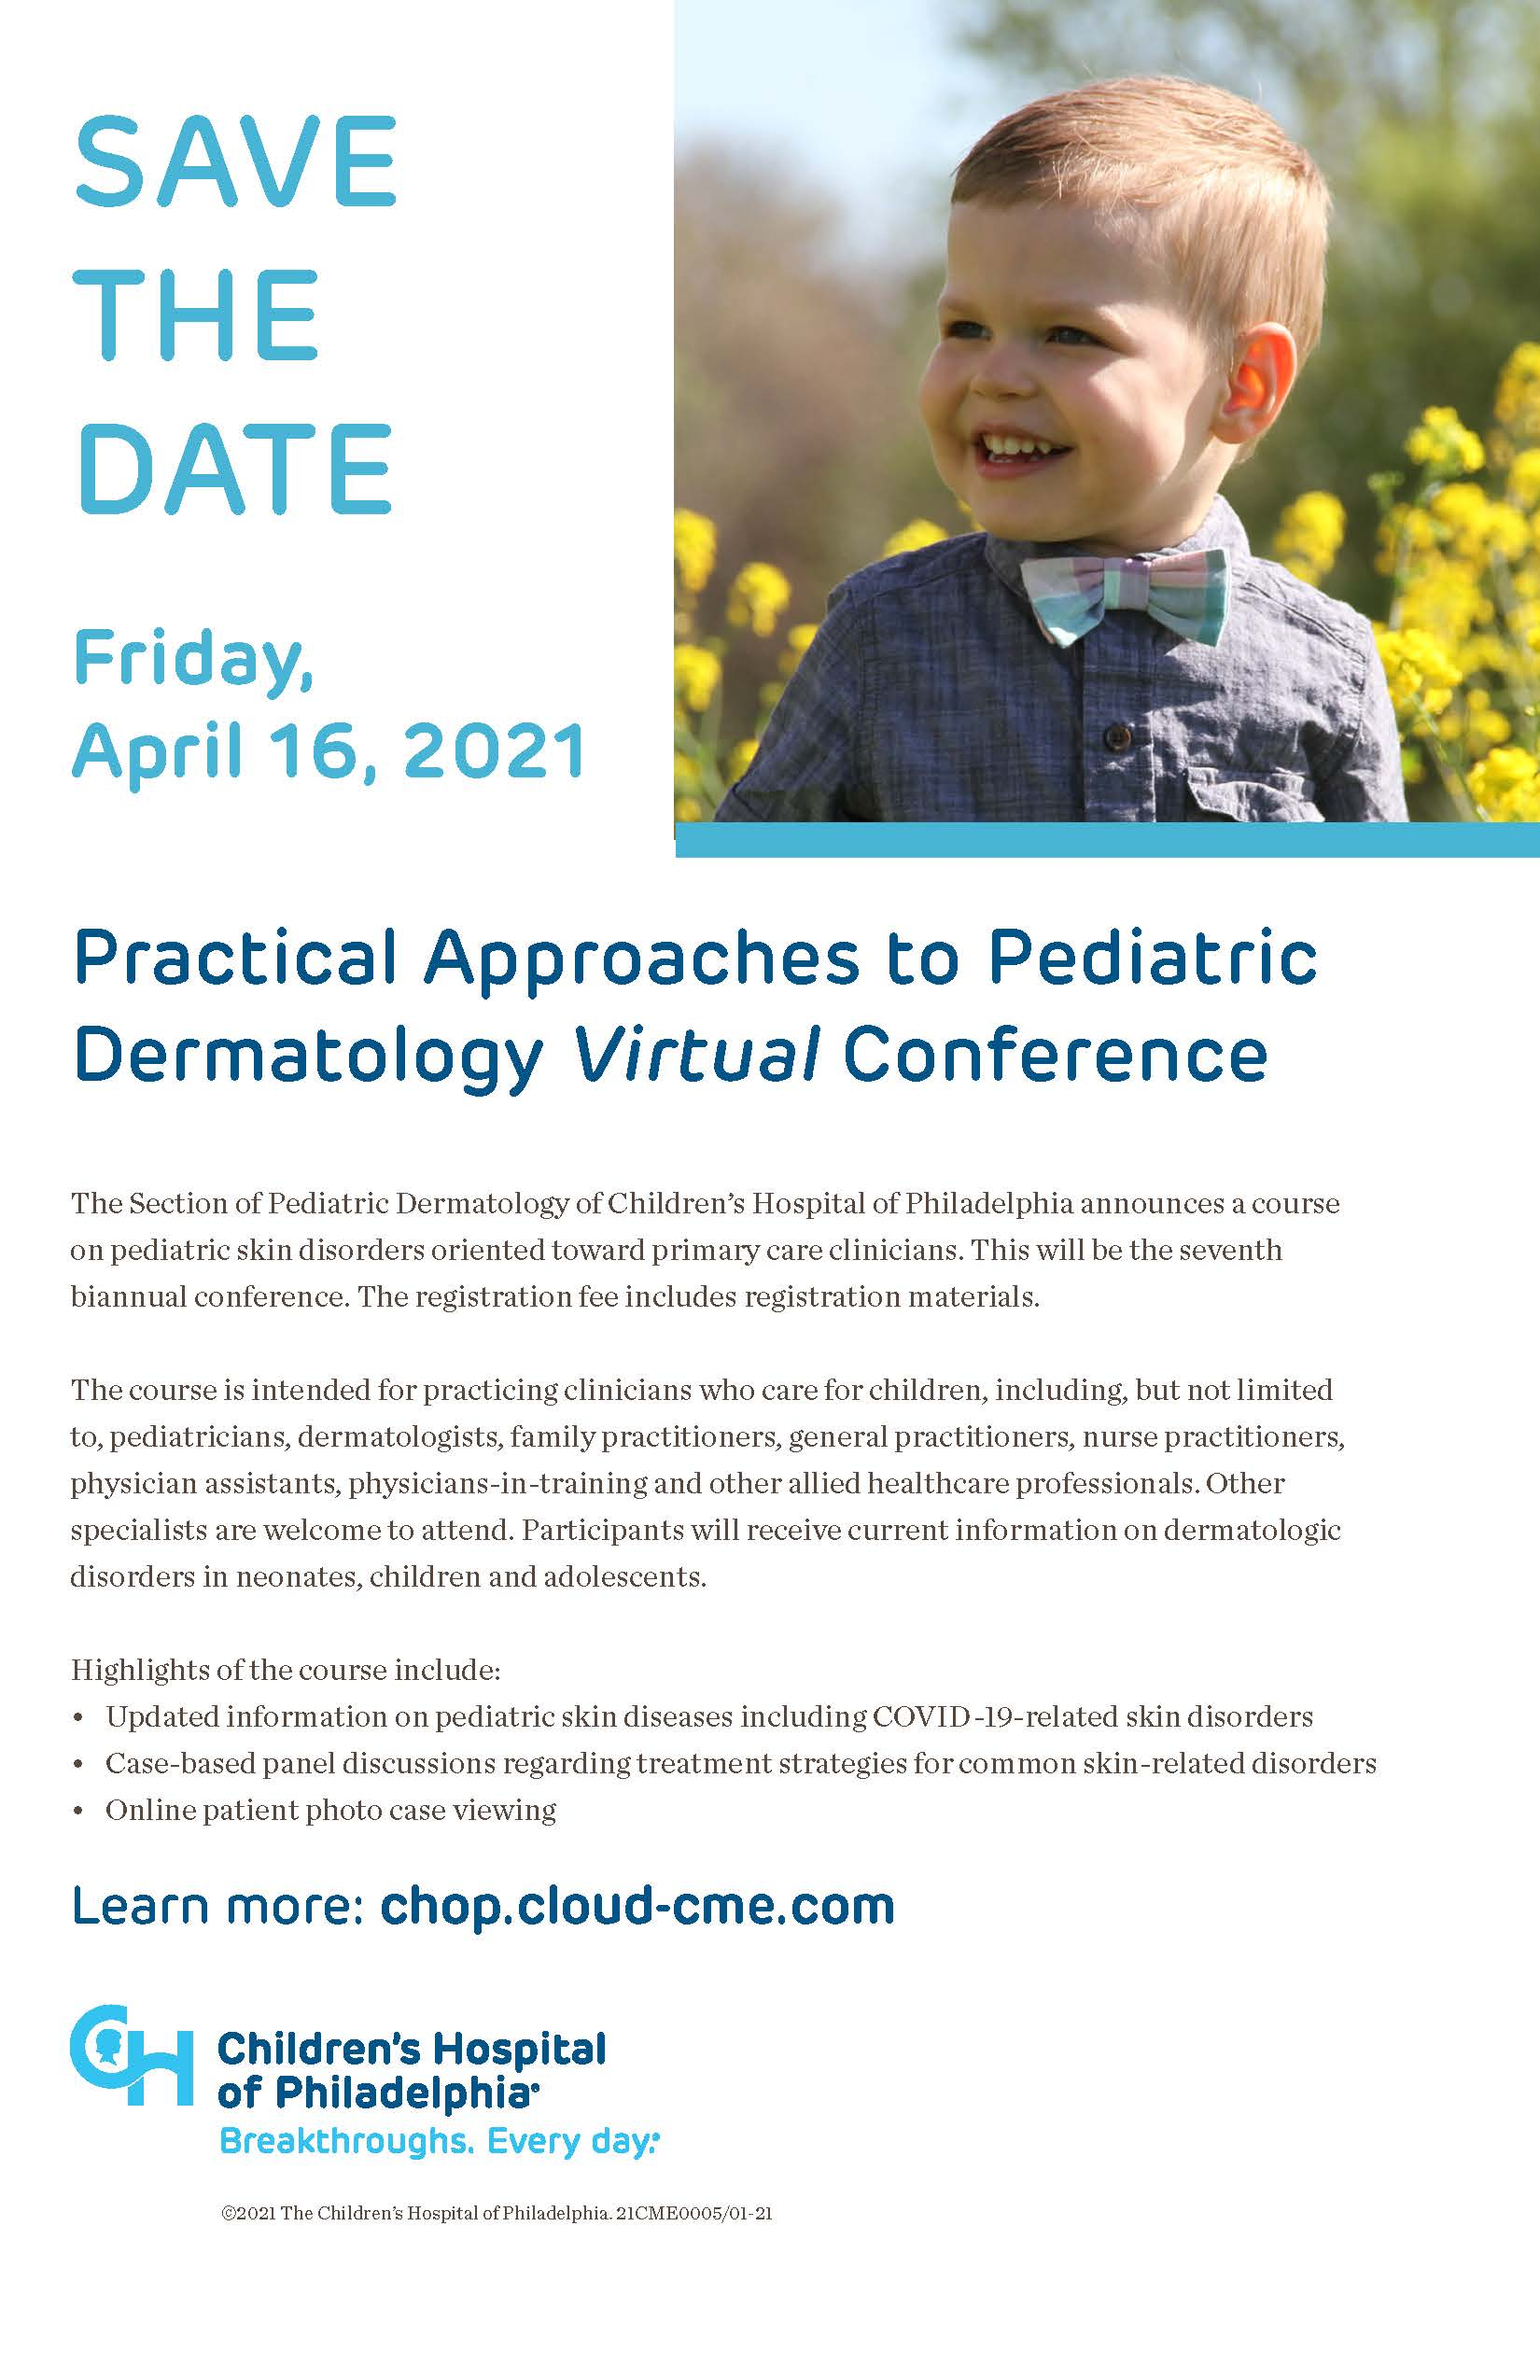 Practical Approaches to Pediatric Dermatology Virtual Conference Banner